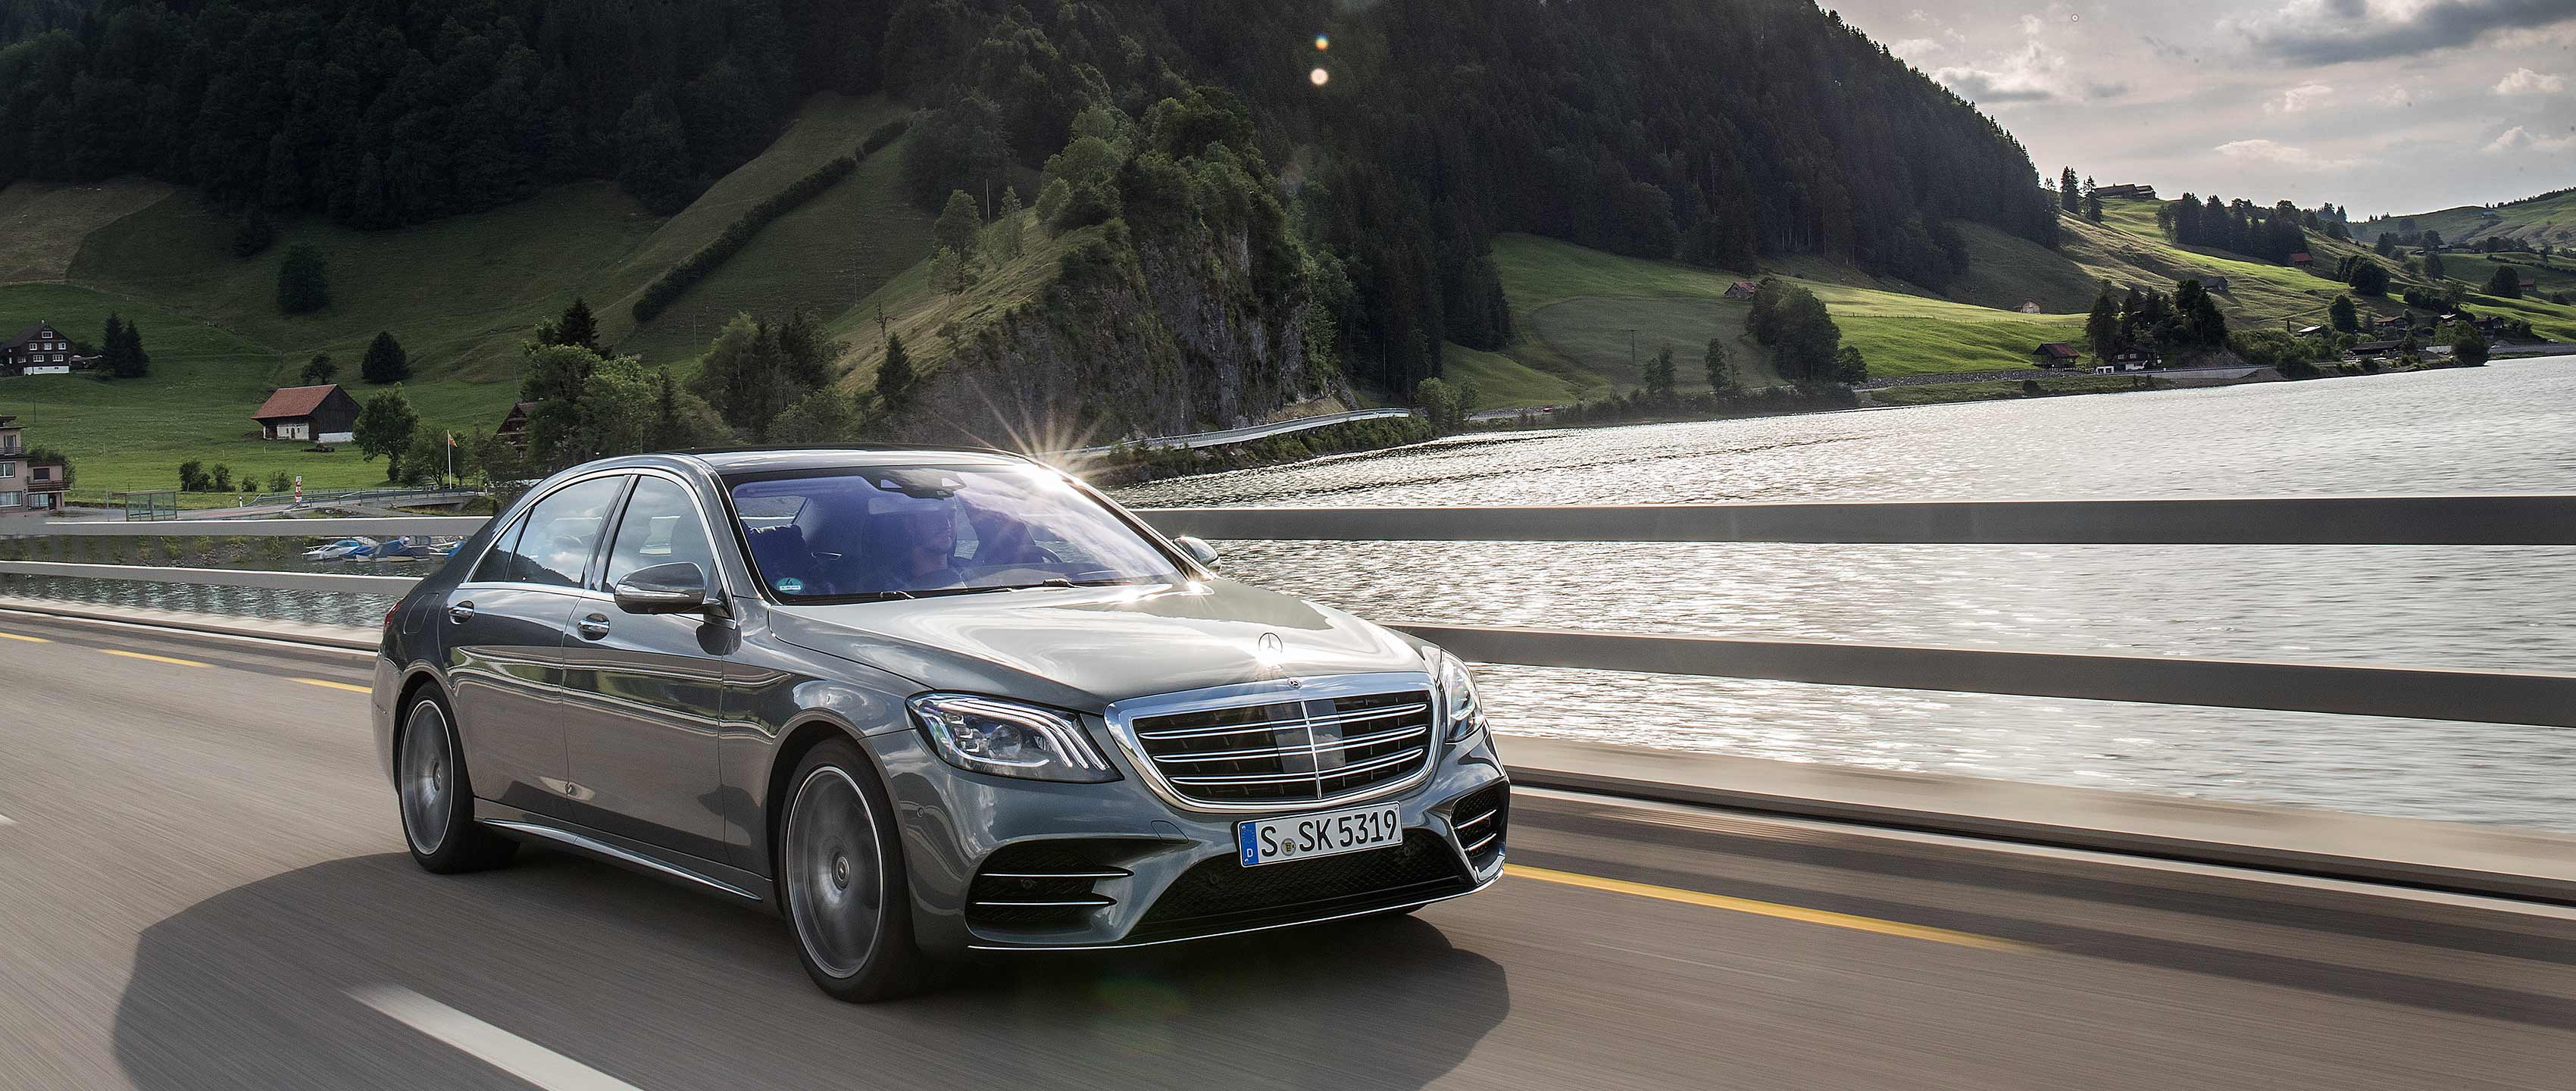 And Another One: Up To A Million Daimler Diesel Automobiles Have Illegal Diesel Cheat Software